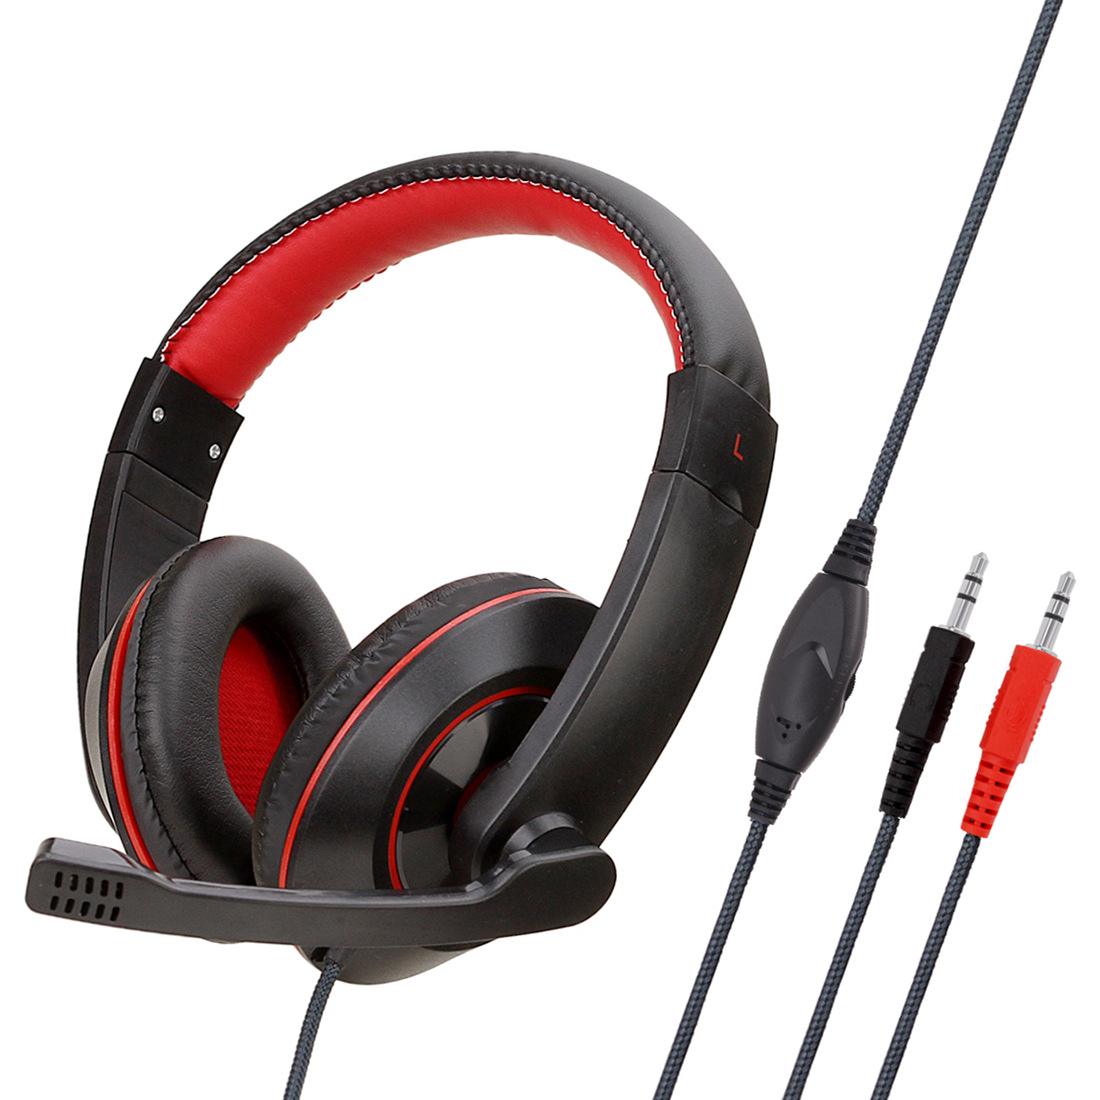 Anti-violence Computer Headset Portable Stereo Volume Control Headphone for PC Laptop with Mic SY722MV black PC does not shine headphones with packaging